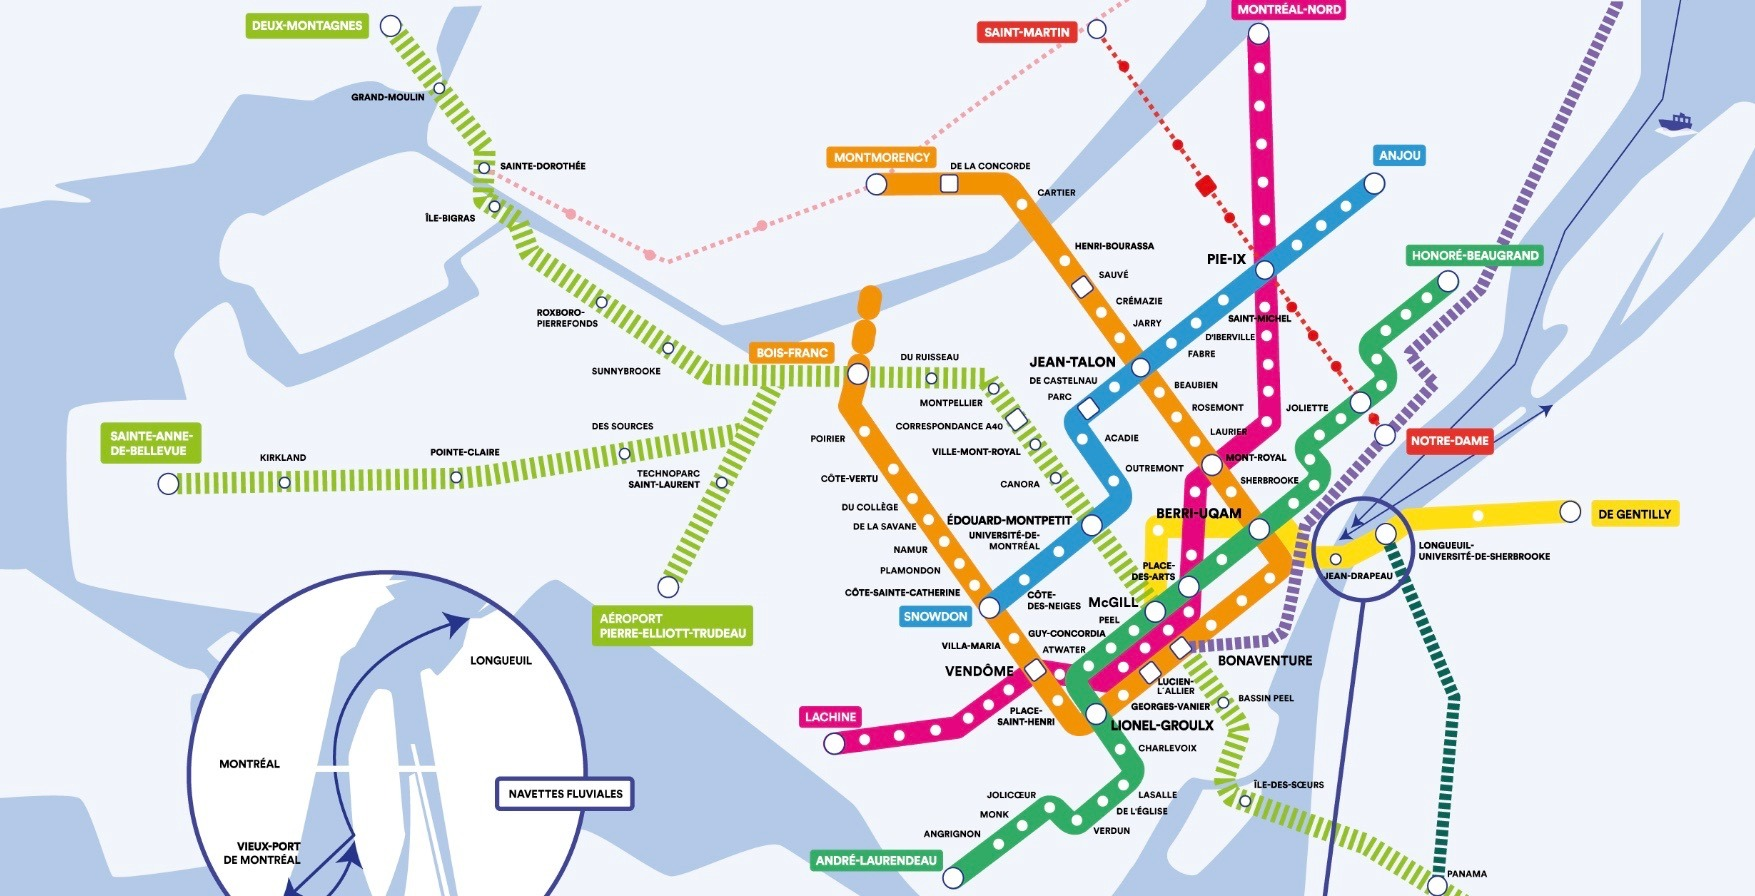 Québec Solidaire promises to add 38 more metro stations if elected